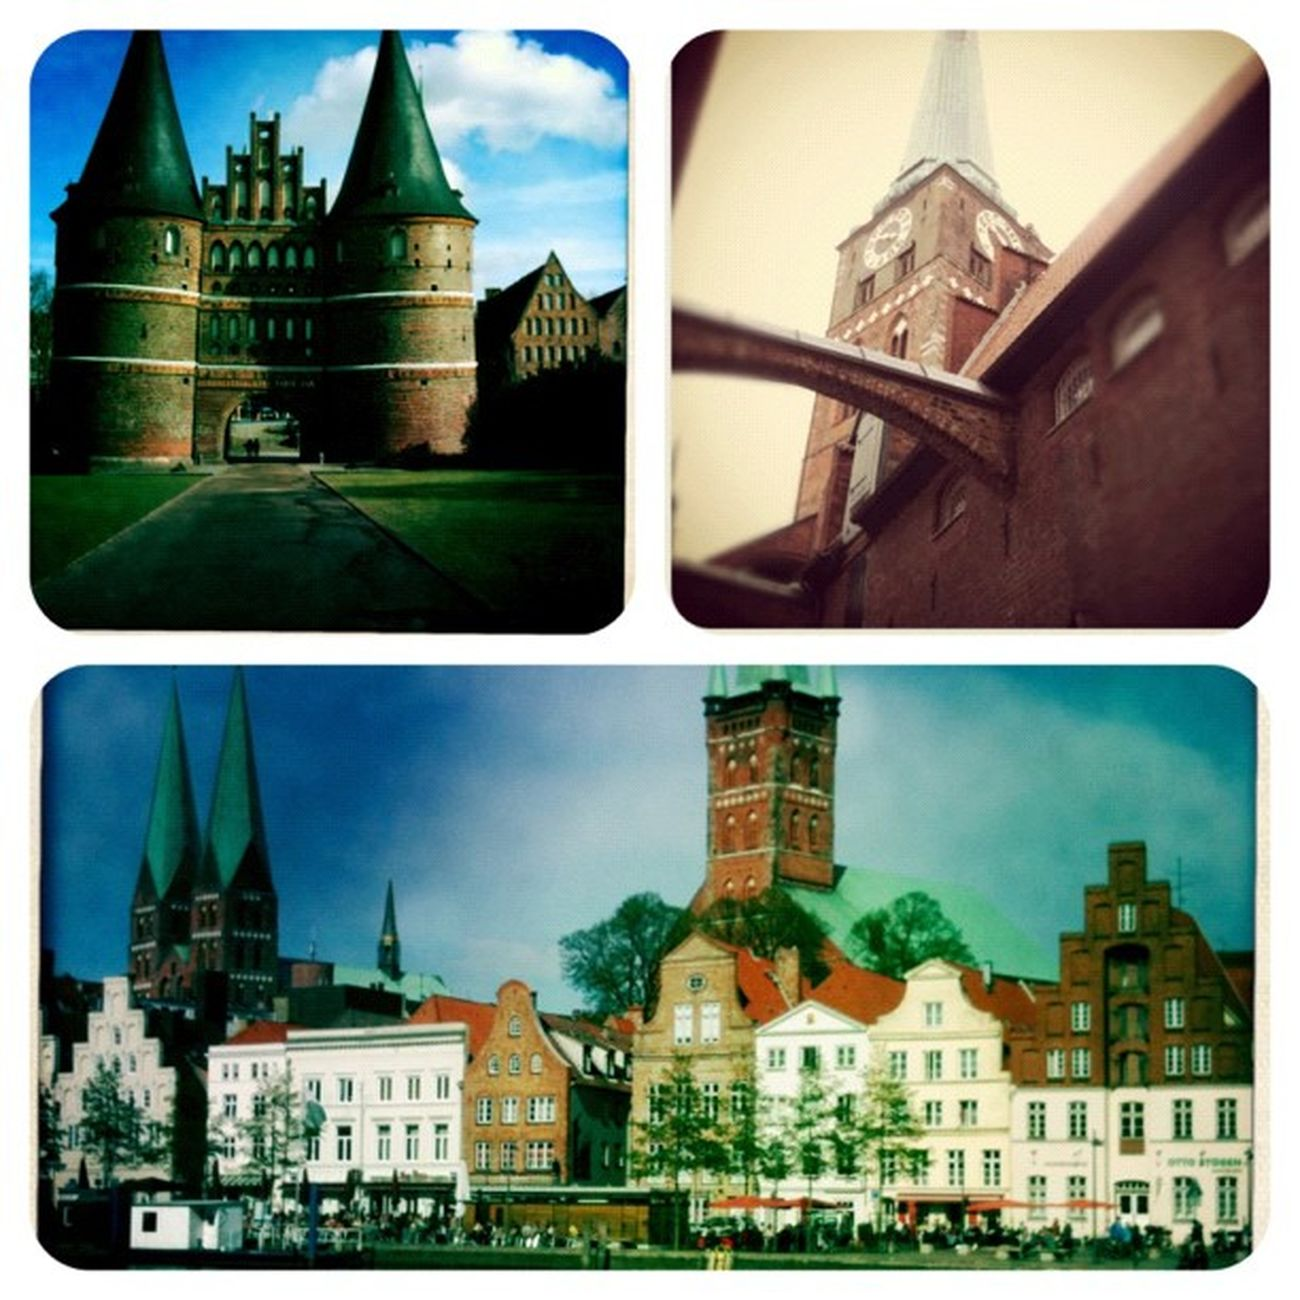 #lübeck #luebeck #welovehl #altstadt #germany #makebeautiful Germany Altstadt Lübeck Makebeautiful Luebeck Welovehl